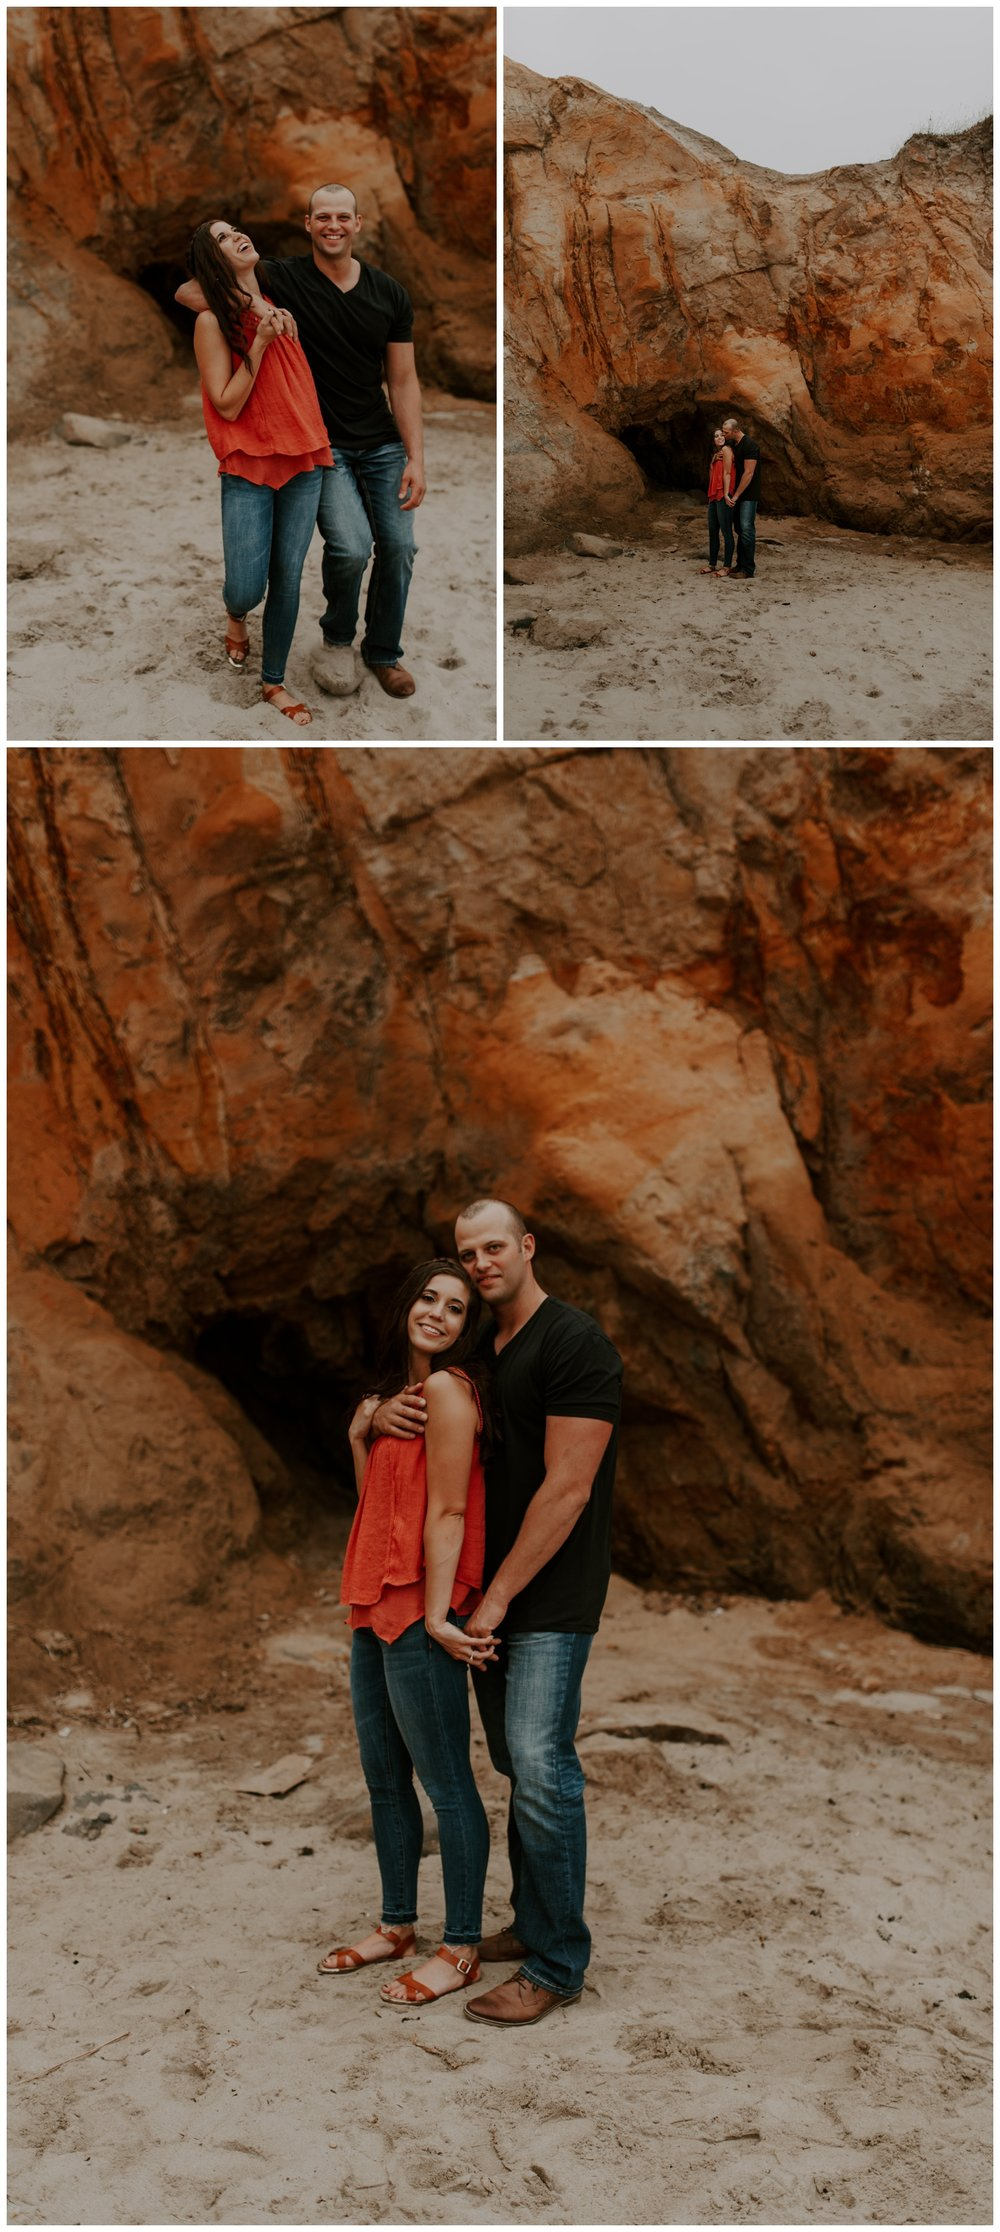 Haley and Robbie Engagements-79.jpg